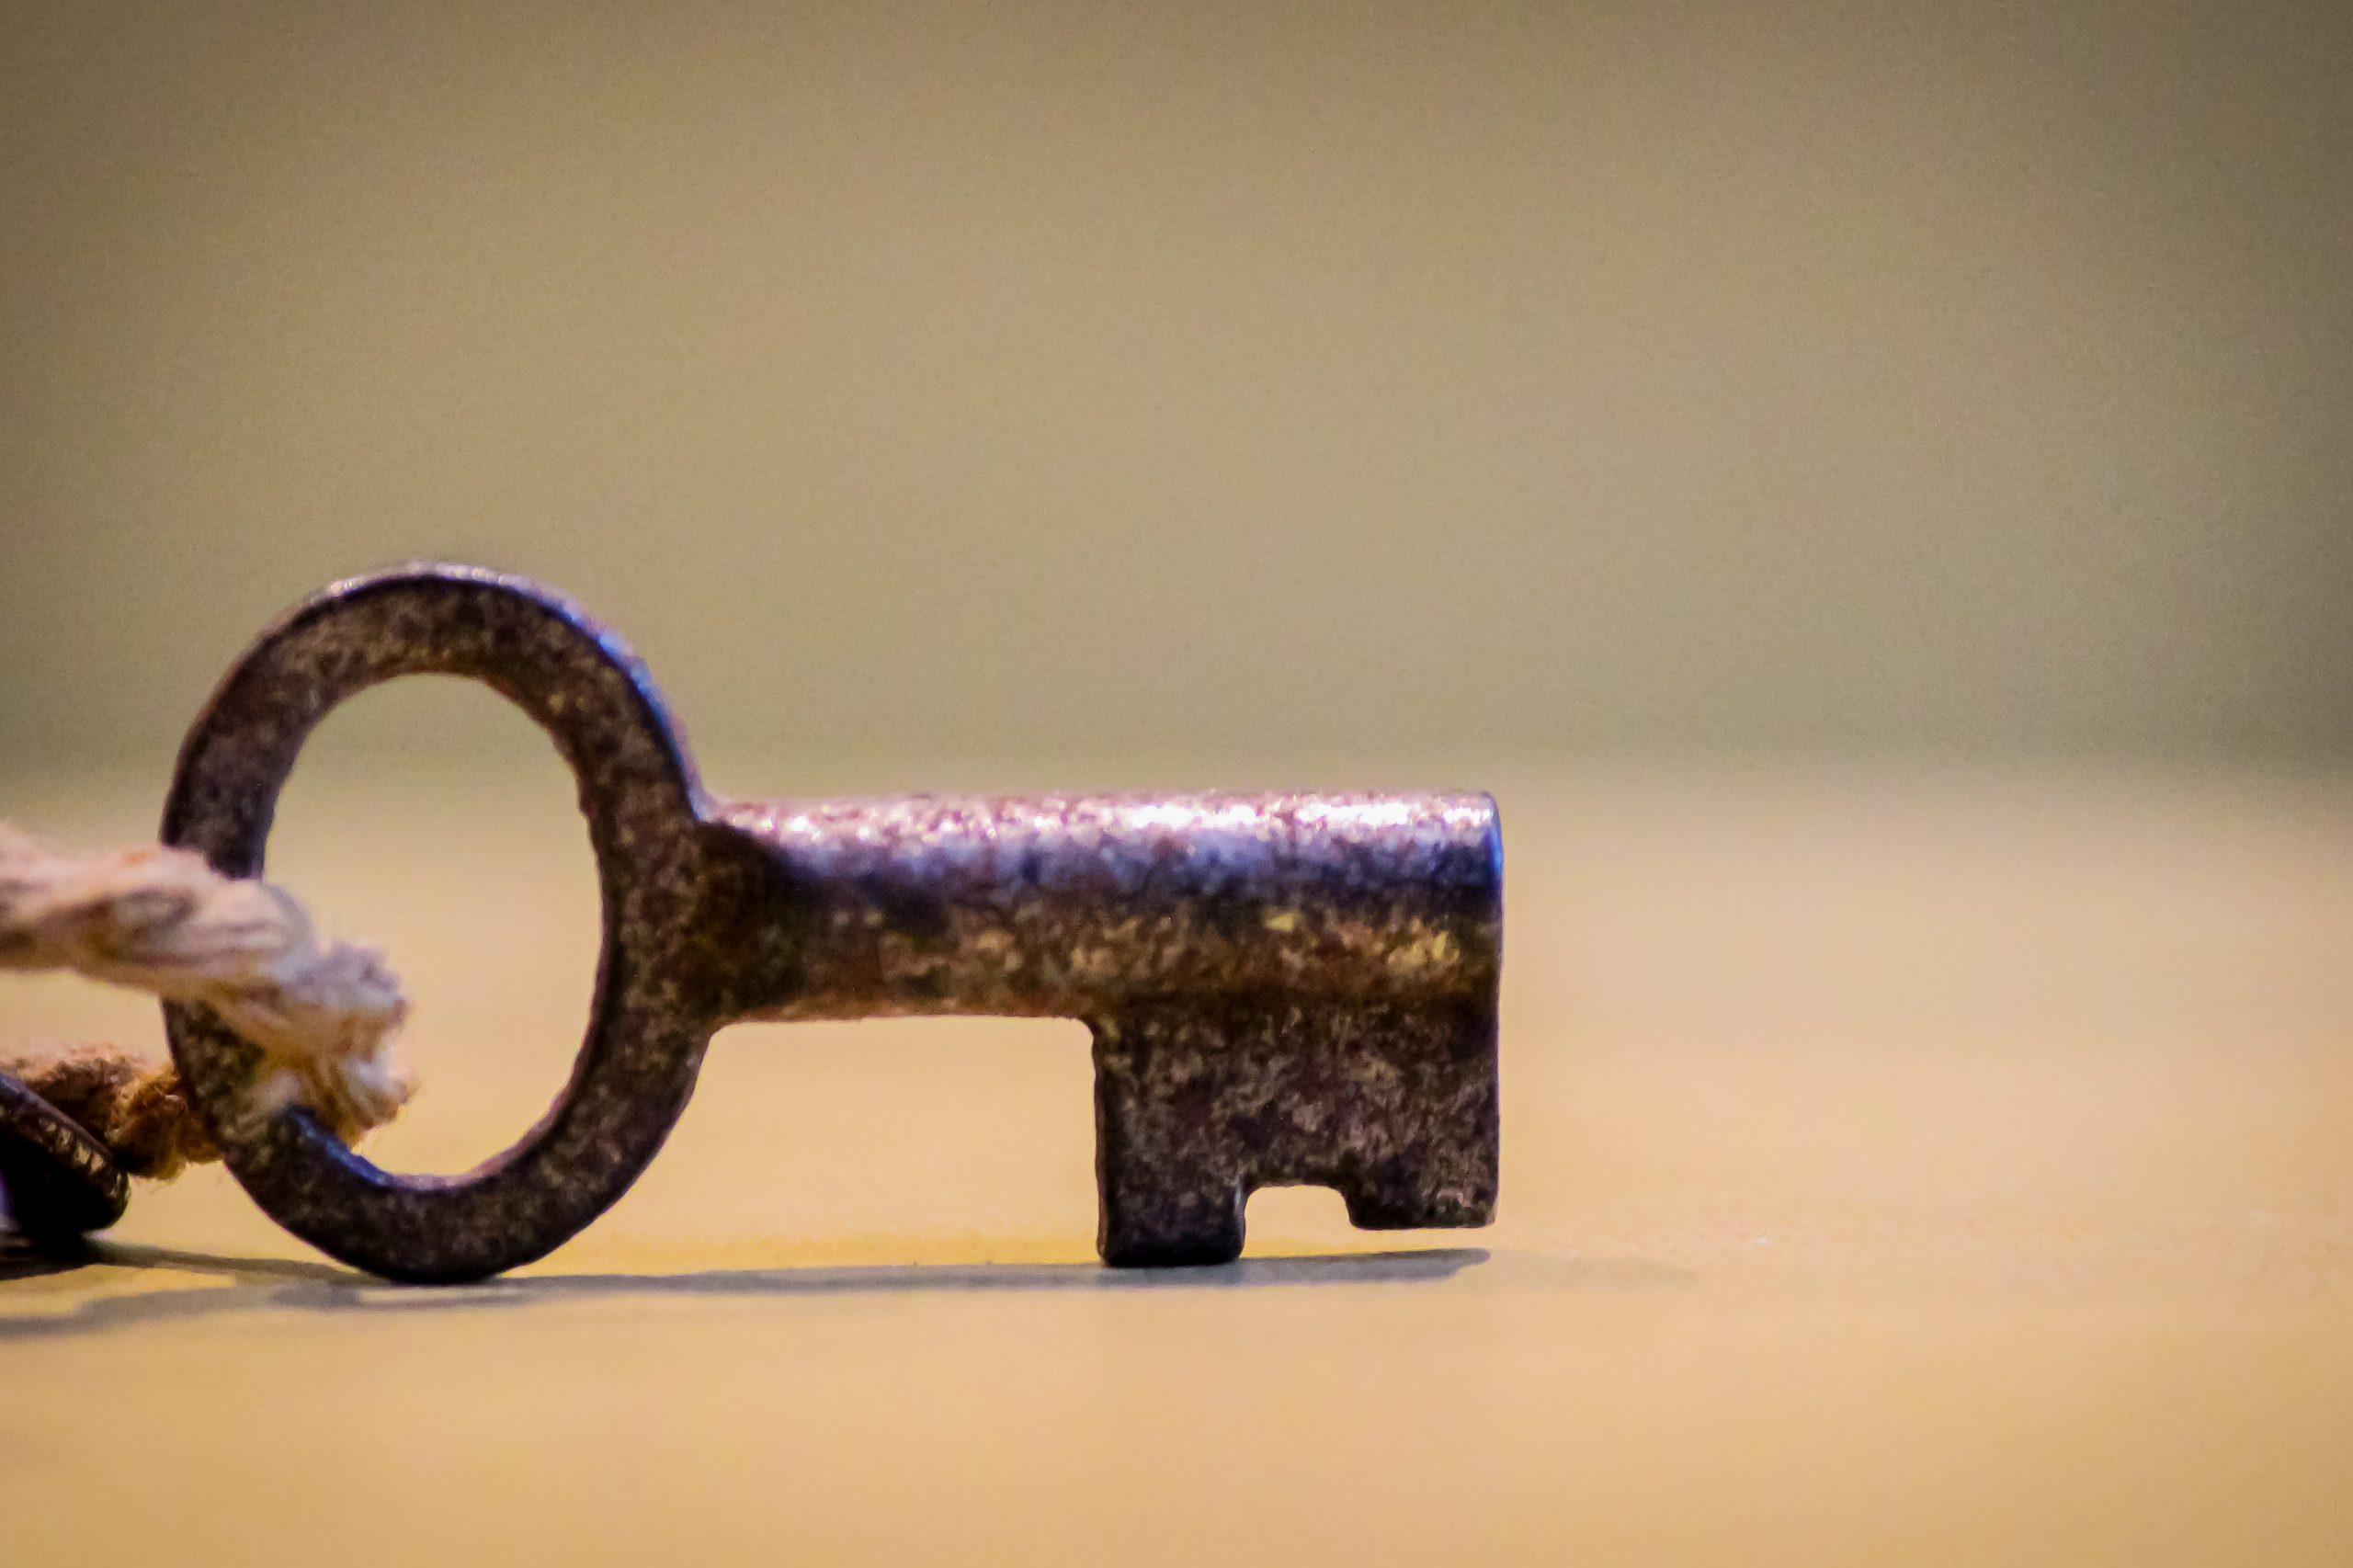 rusted key